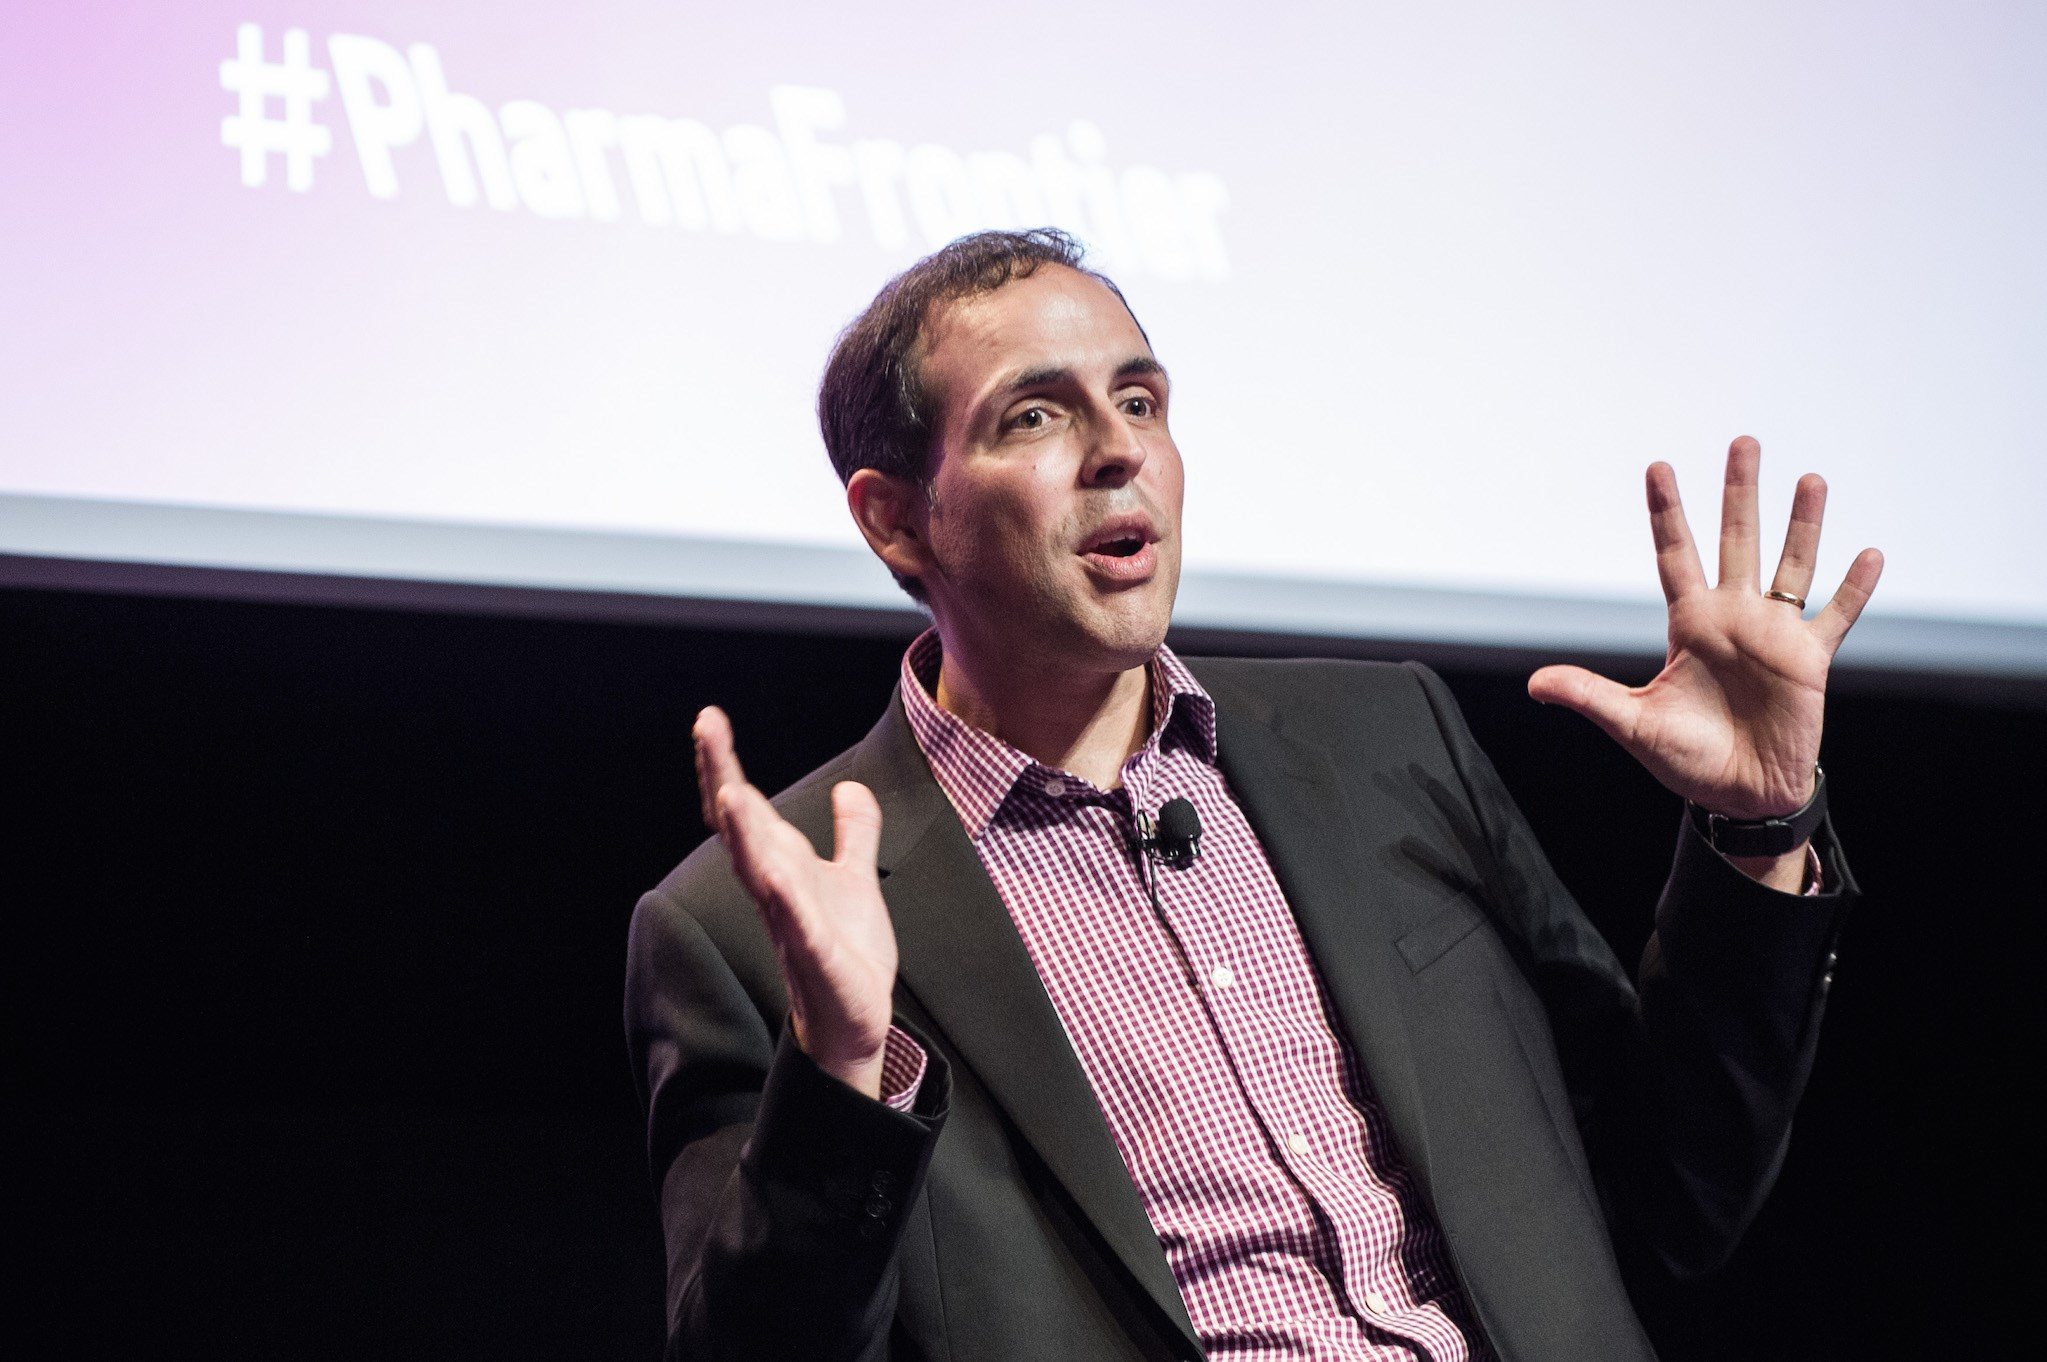 Novartis exec: Pharma culture can be stumbling block to creativity